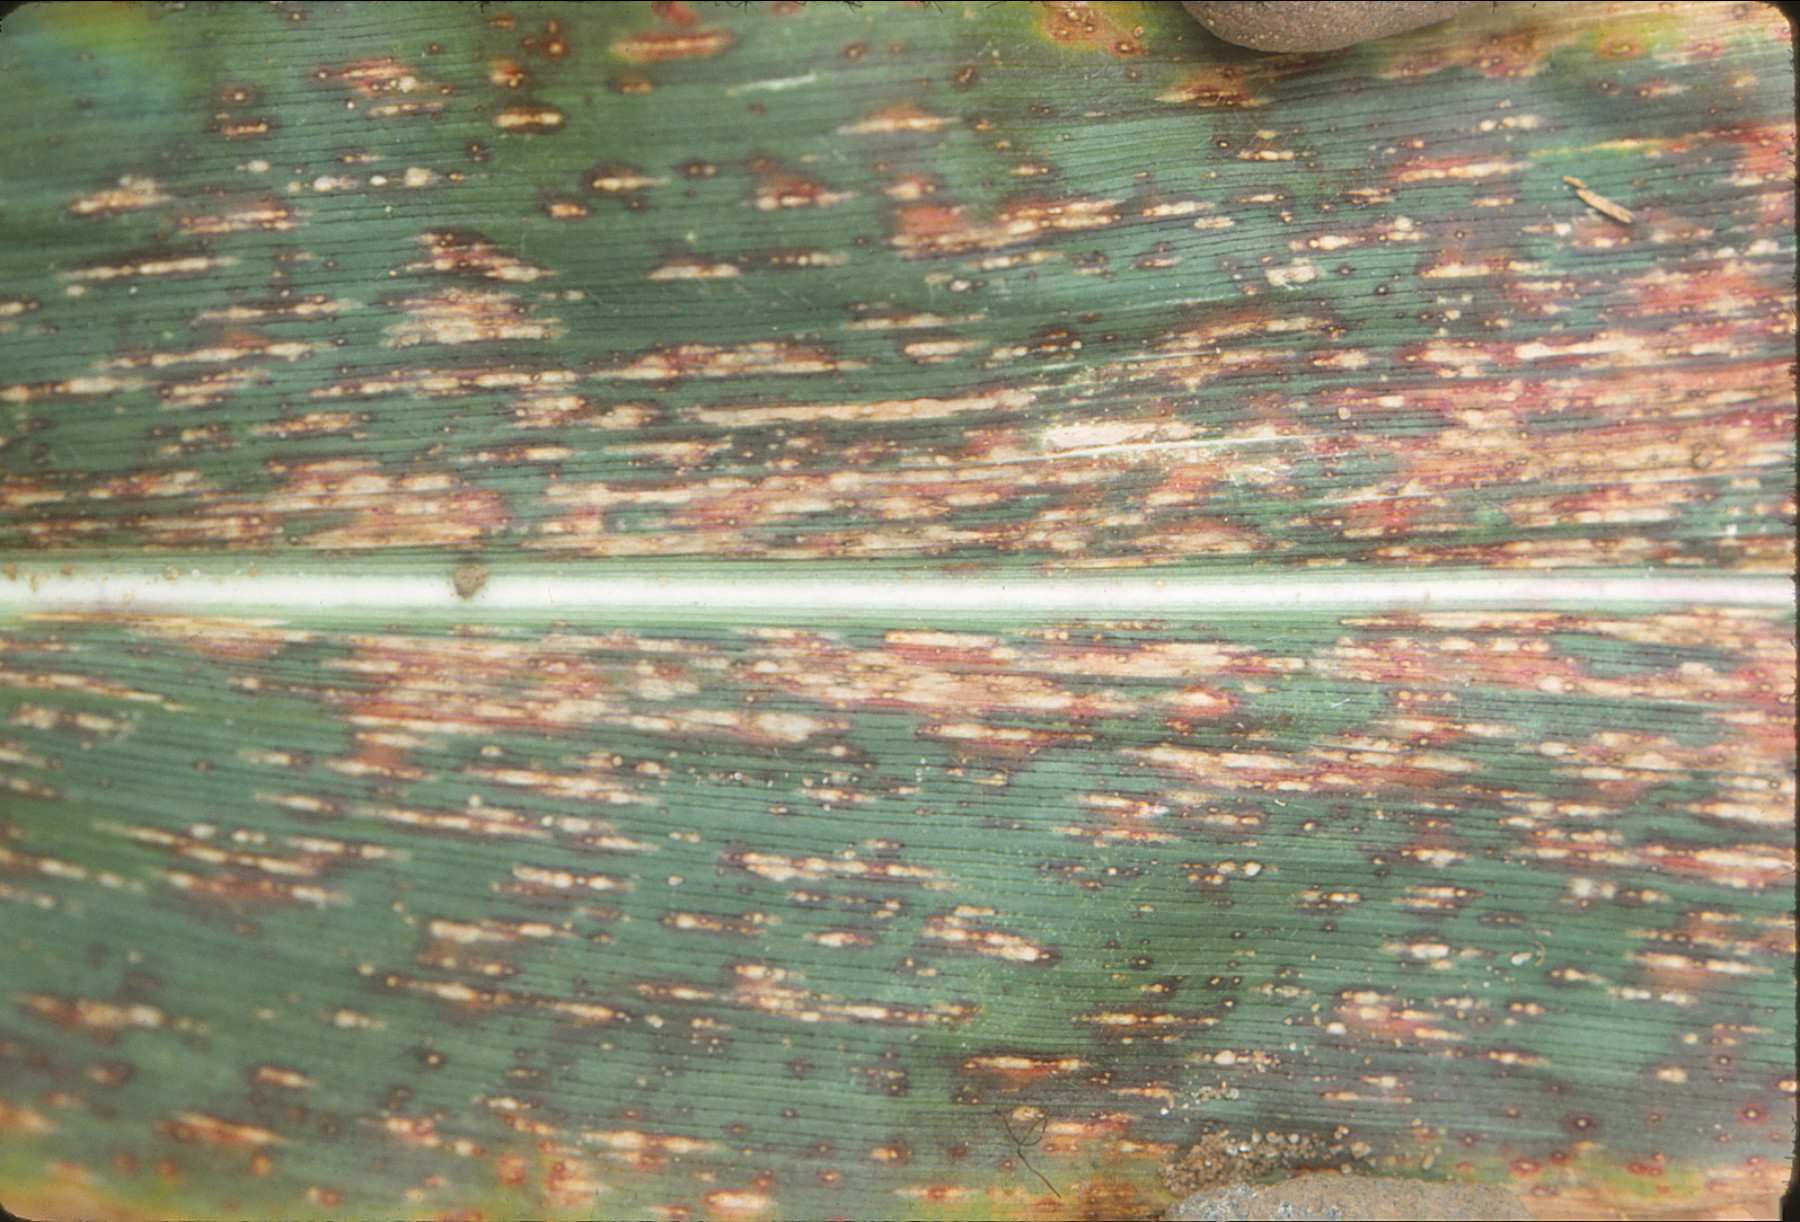 Northern corn leaf spot race 3 lesions.